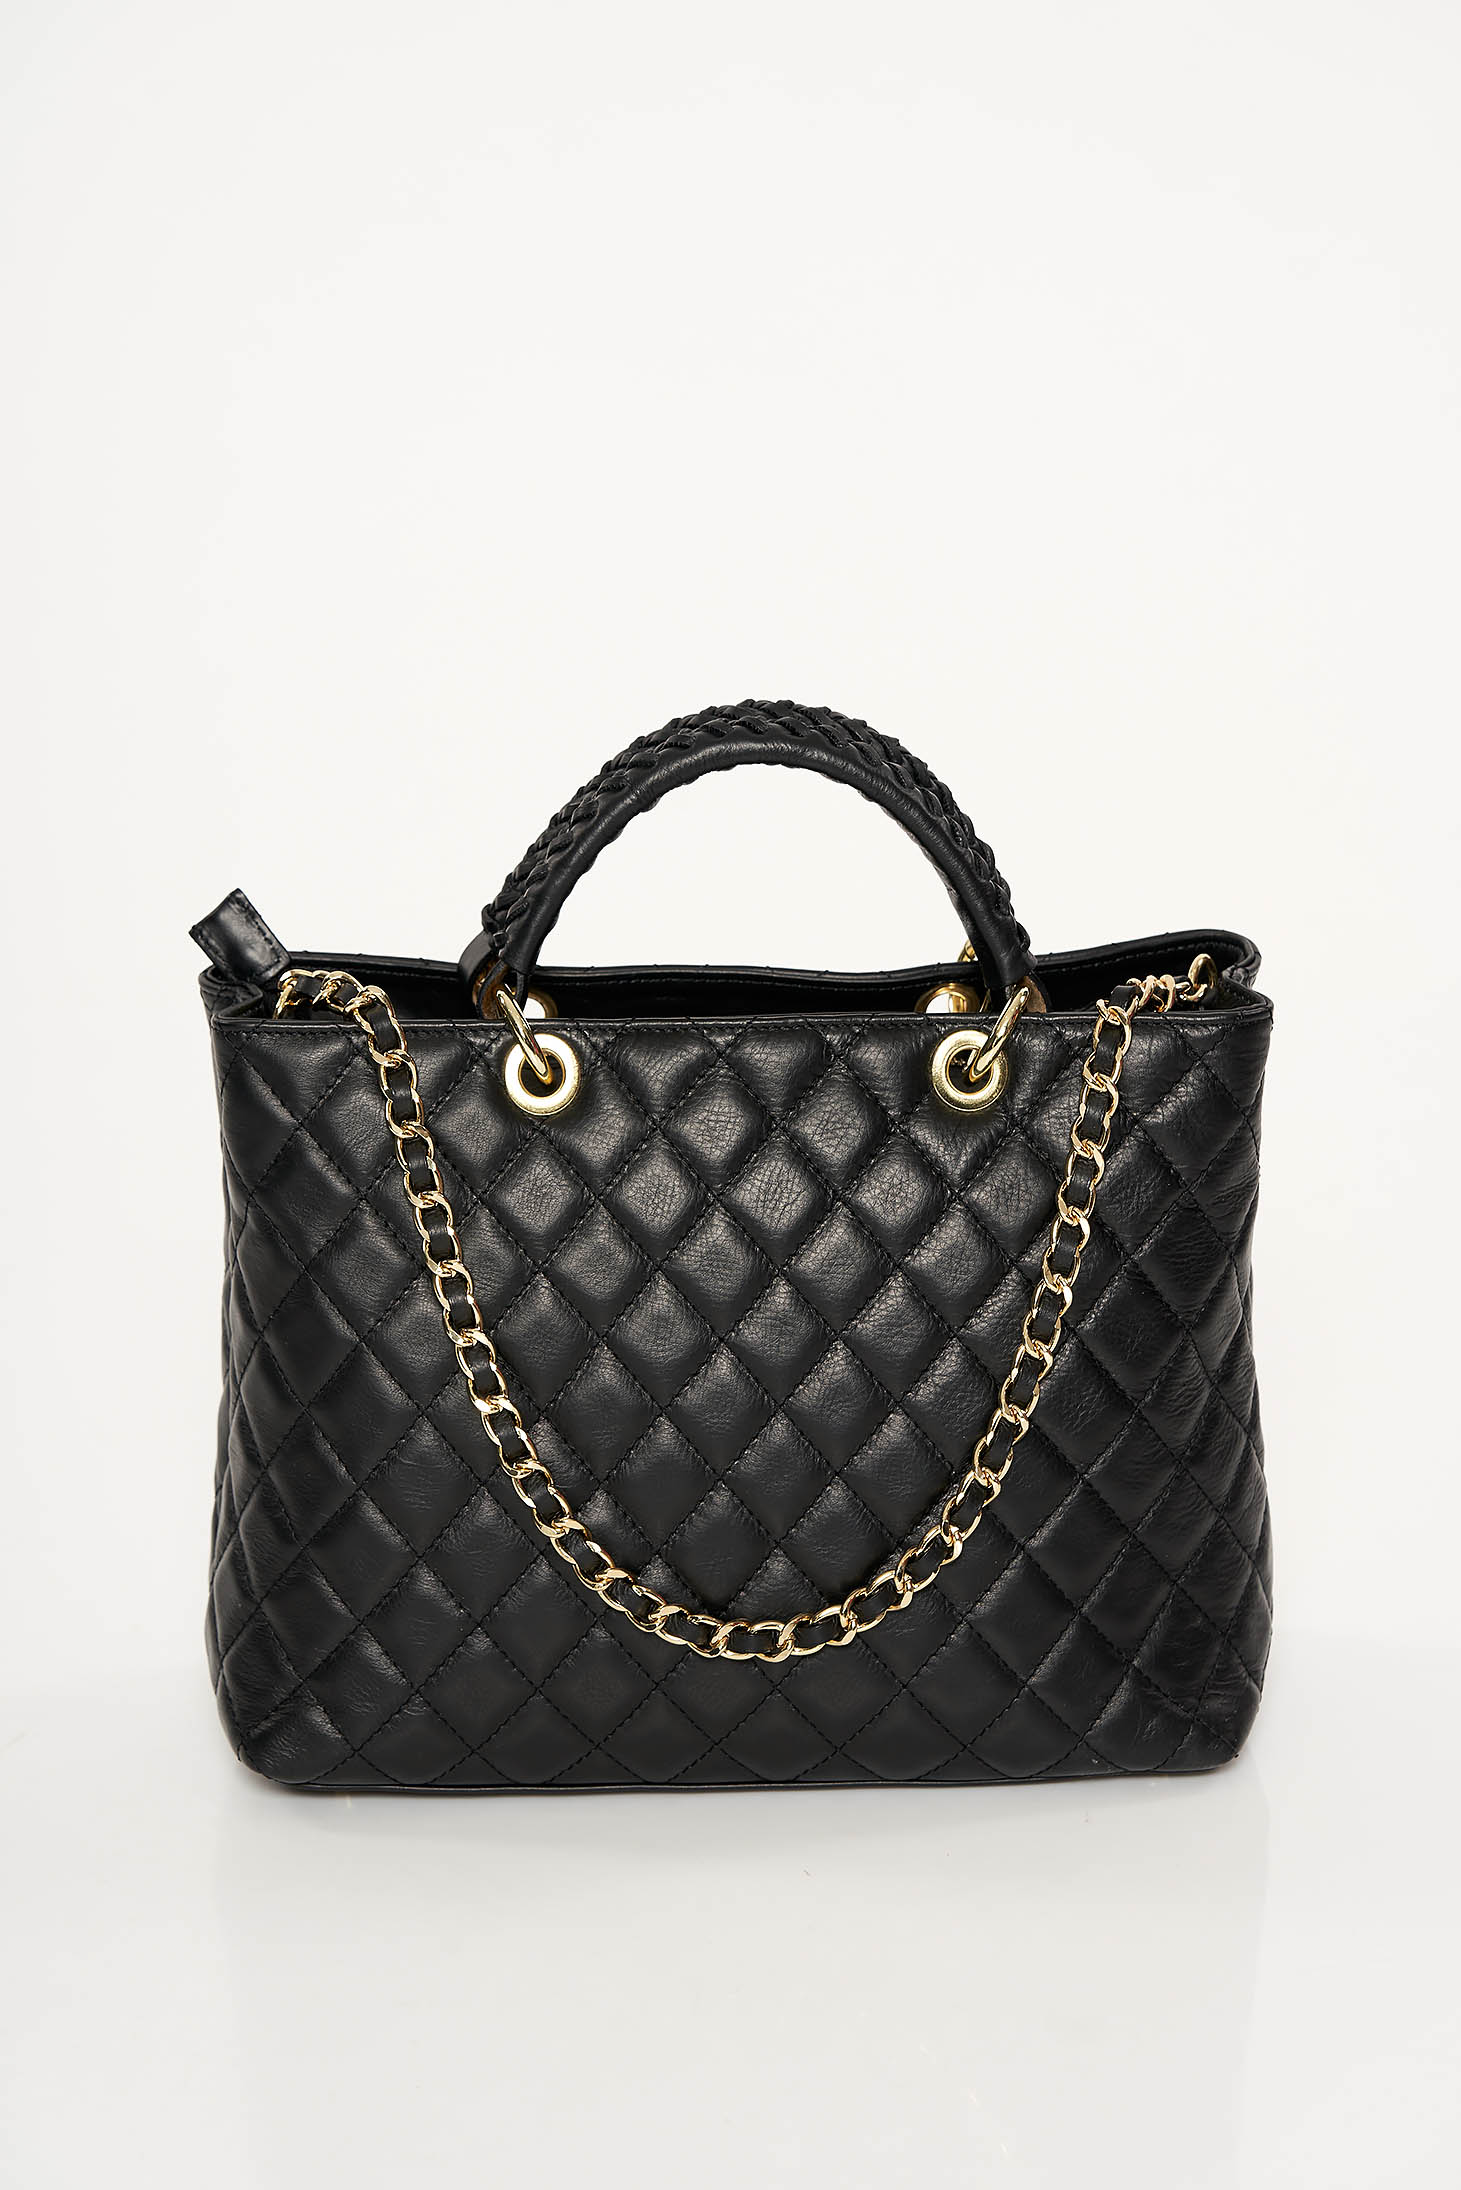 Black bag office natural leather long chain handle